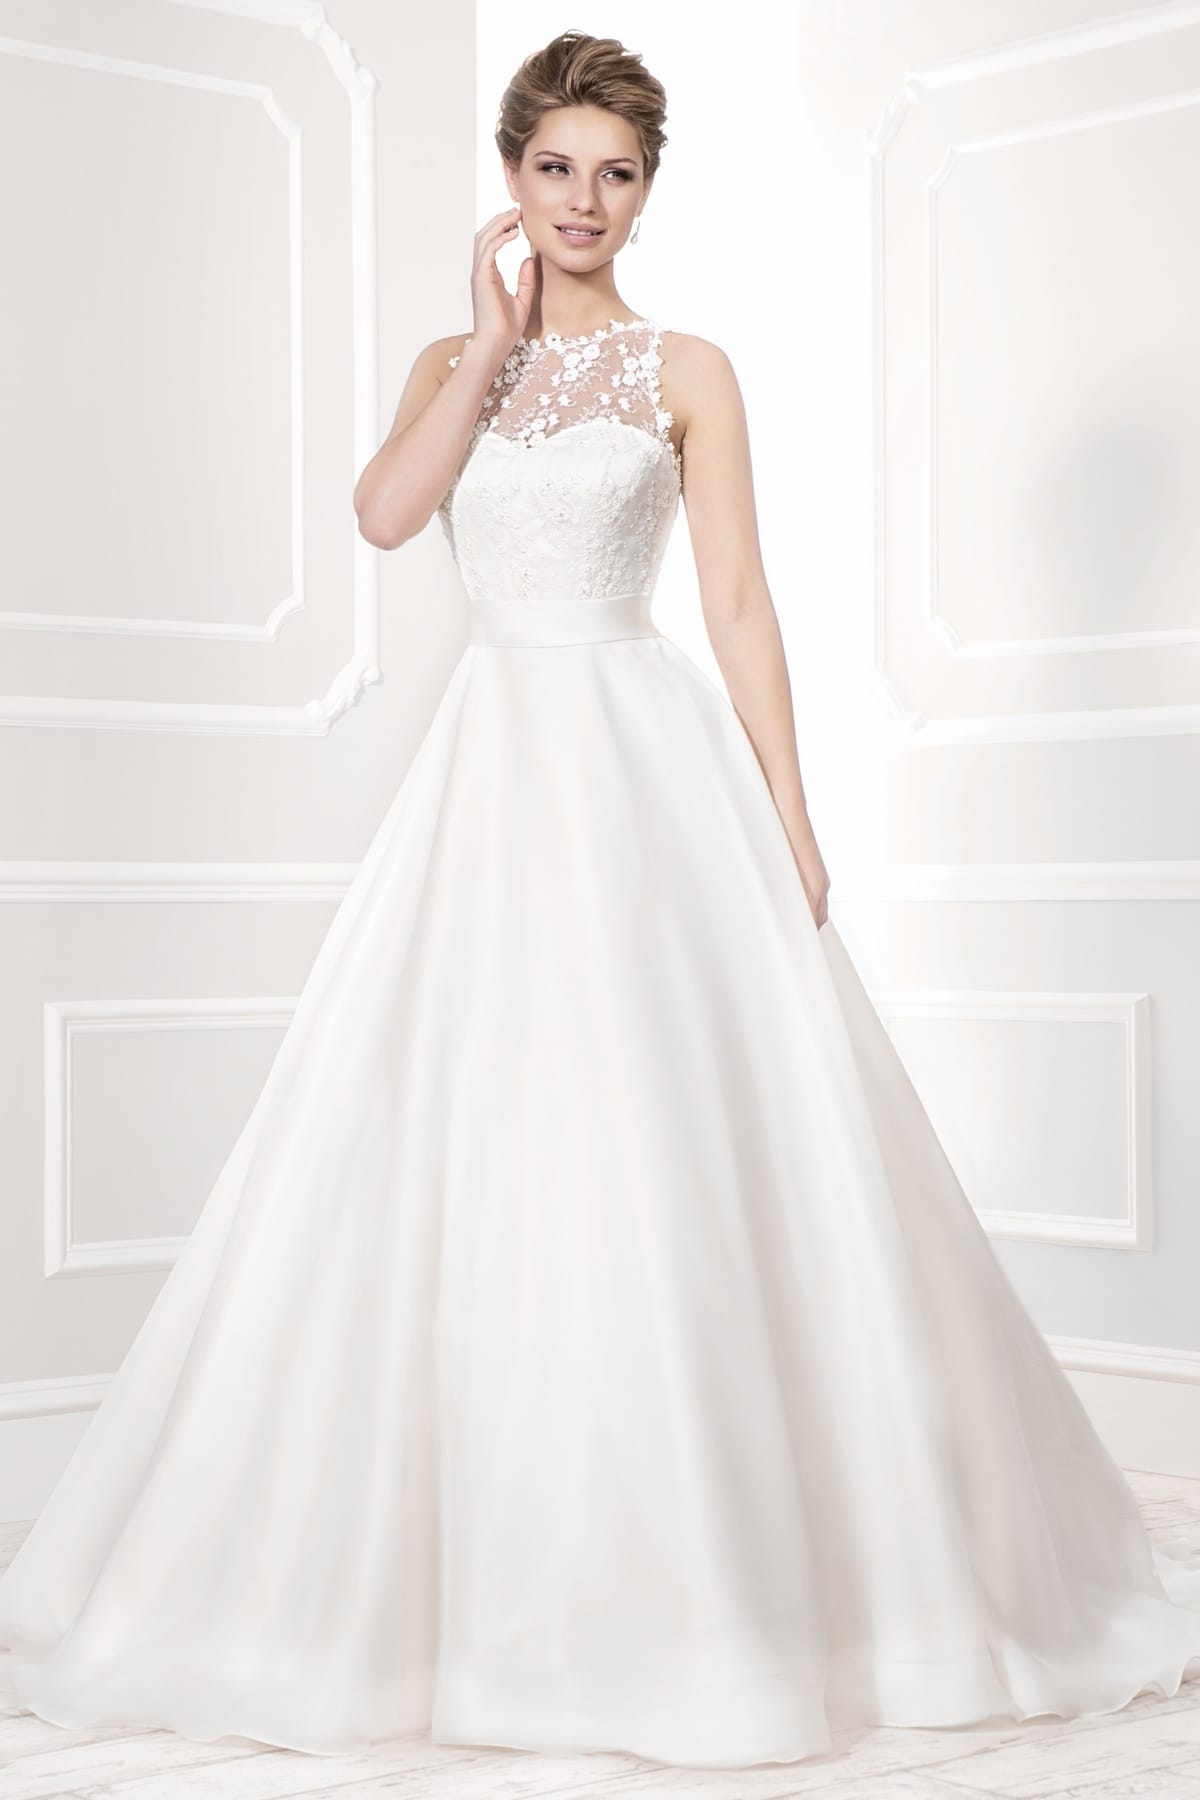 Wedding Where Can I Sell My Wedding Dress sell my wedding dress online ireland buy designer ellis